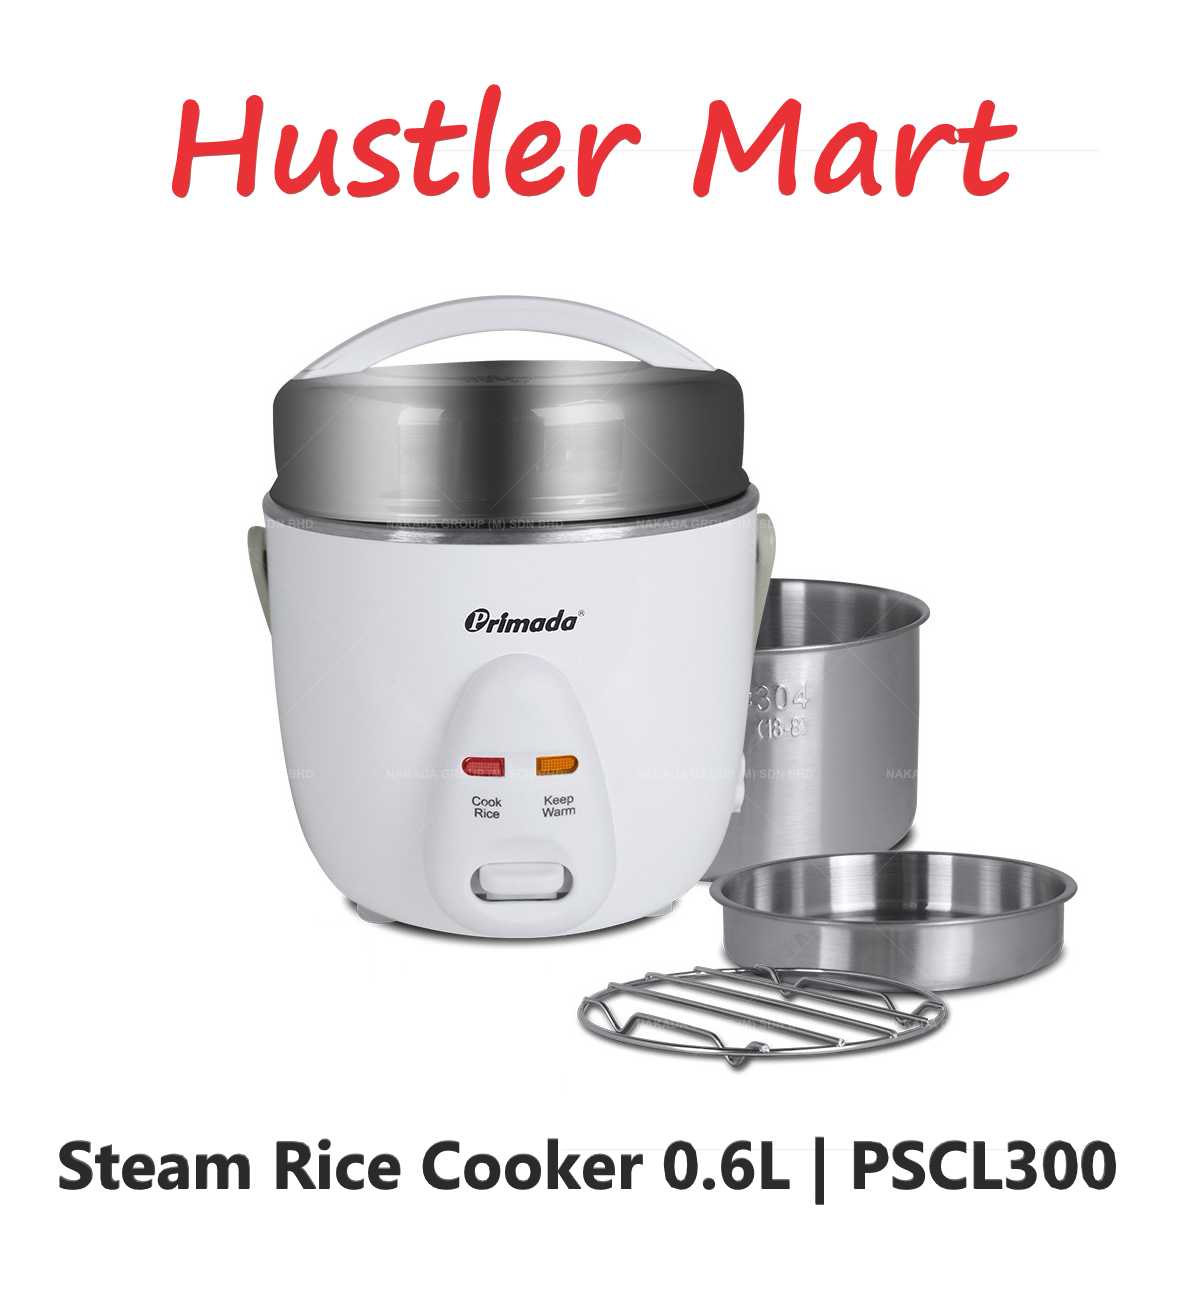 Primada Steam Rice Cooker PSCL300